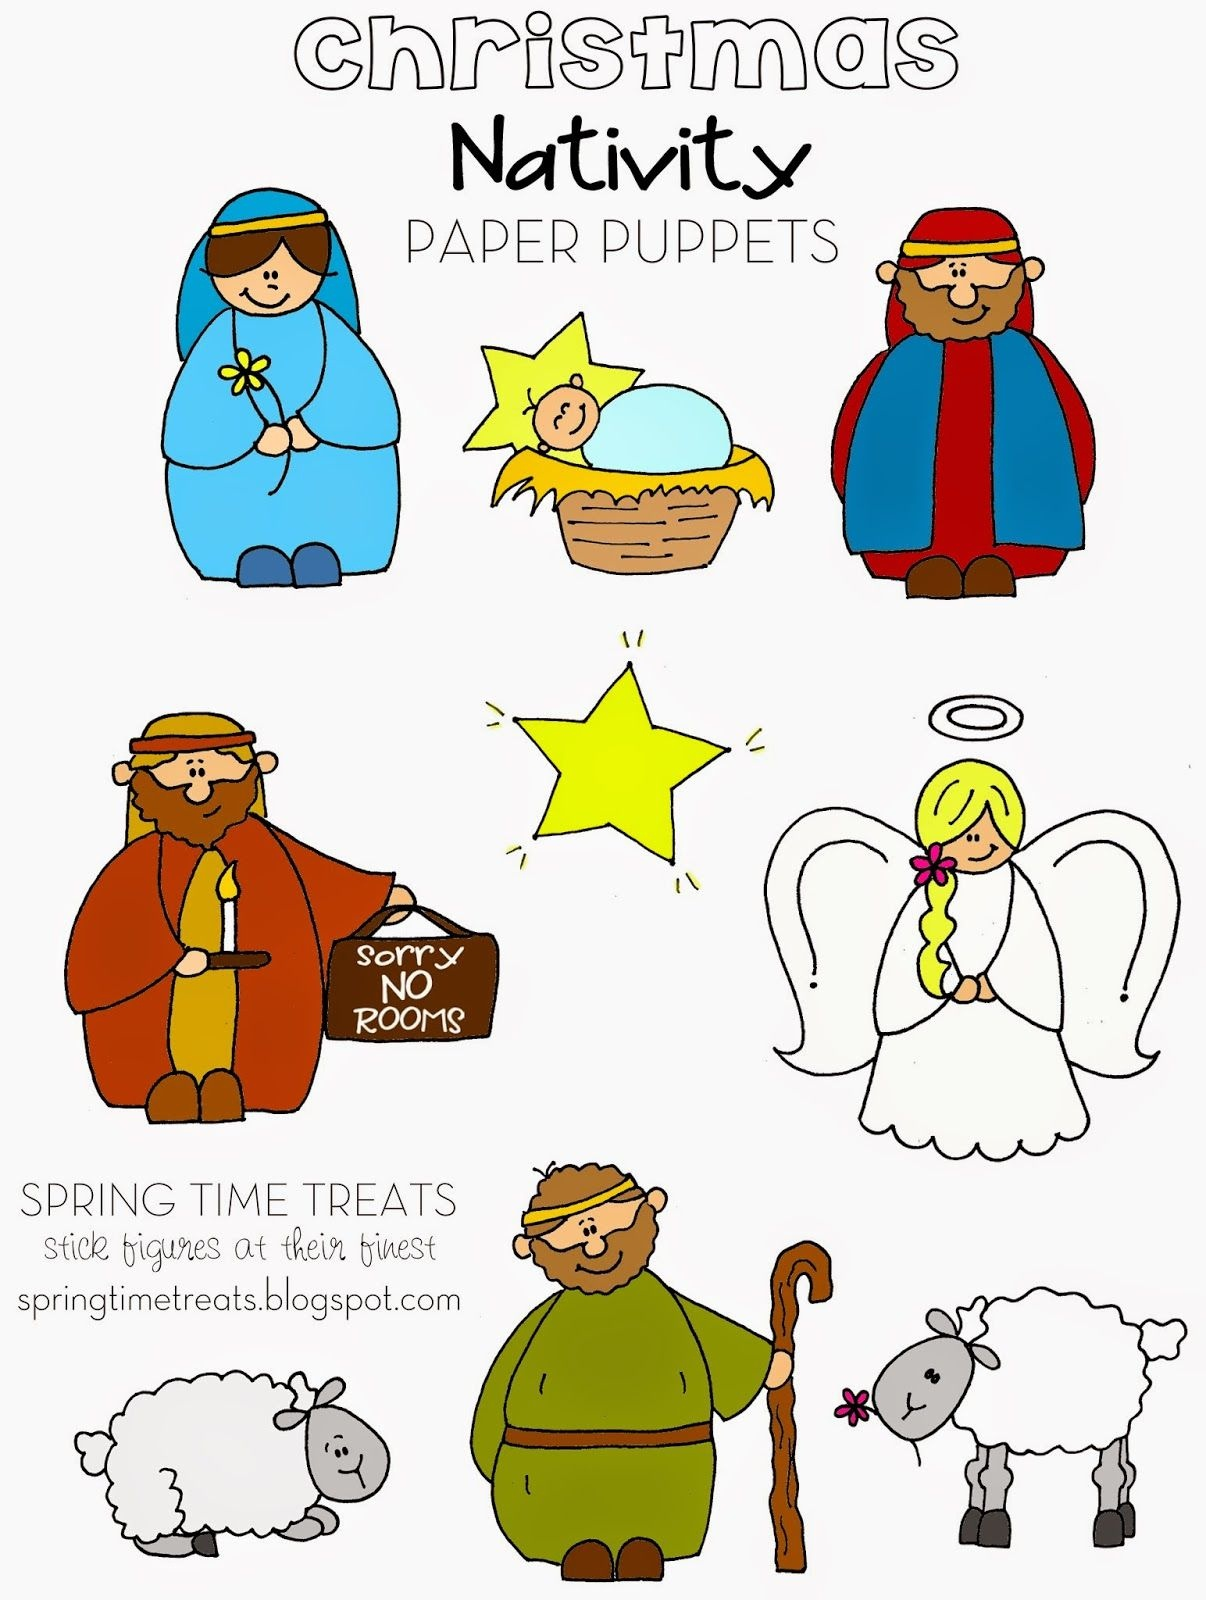 Spring Time Treats: Nativity Paper Puppets - Free Printables | Mdo - Free Printable Nativity Story